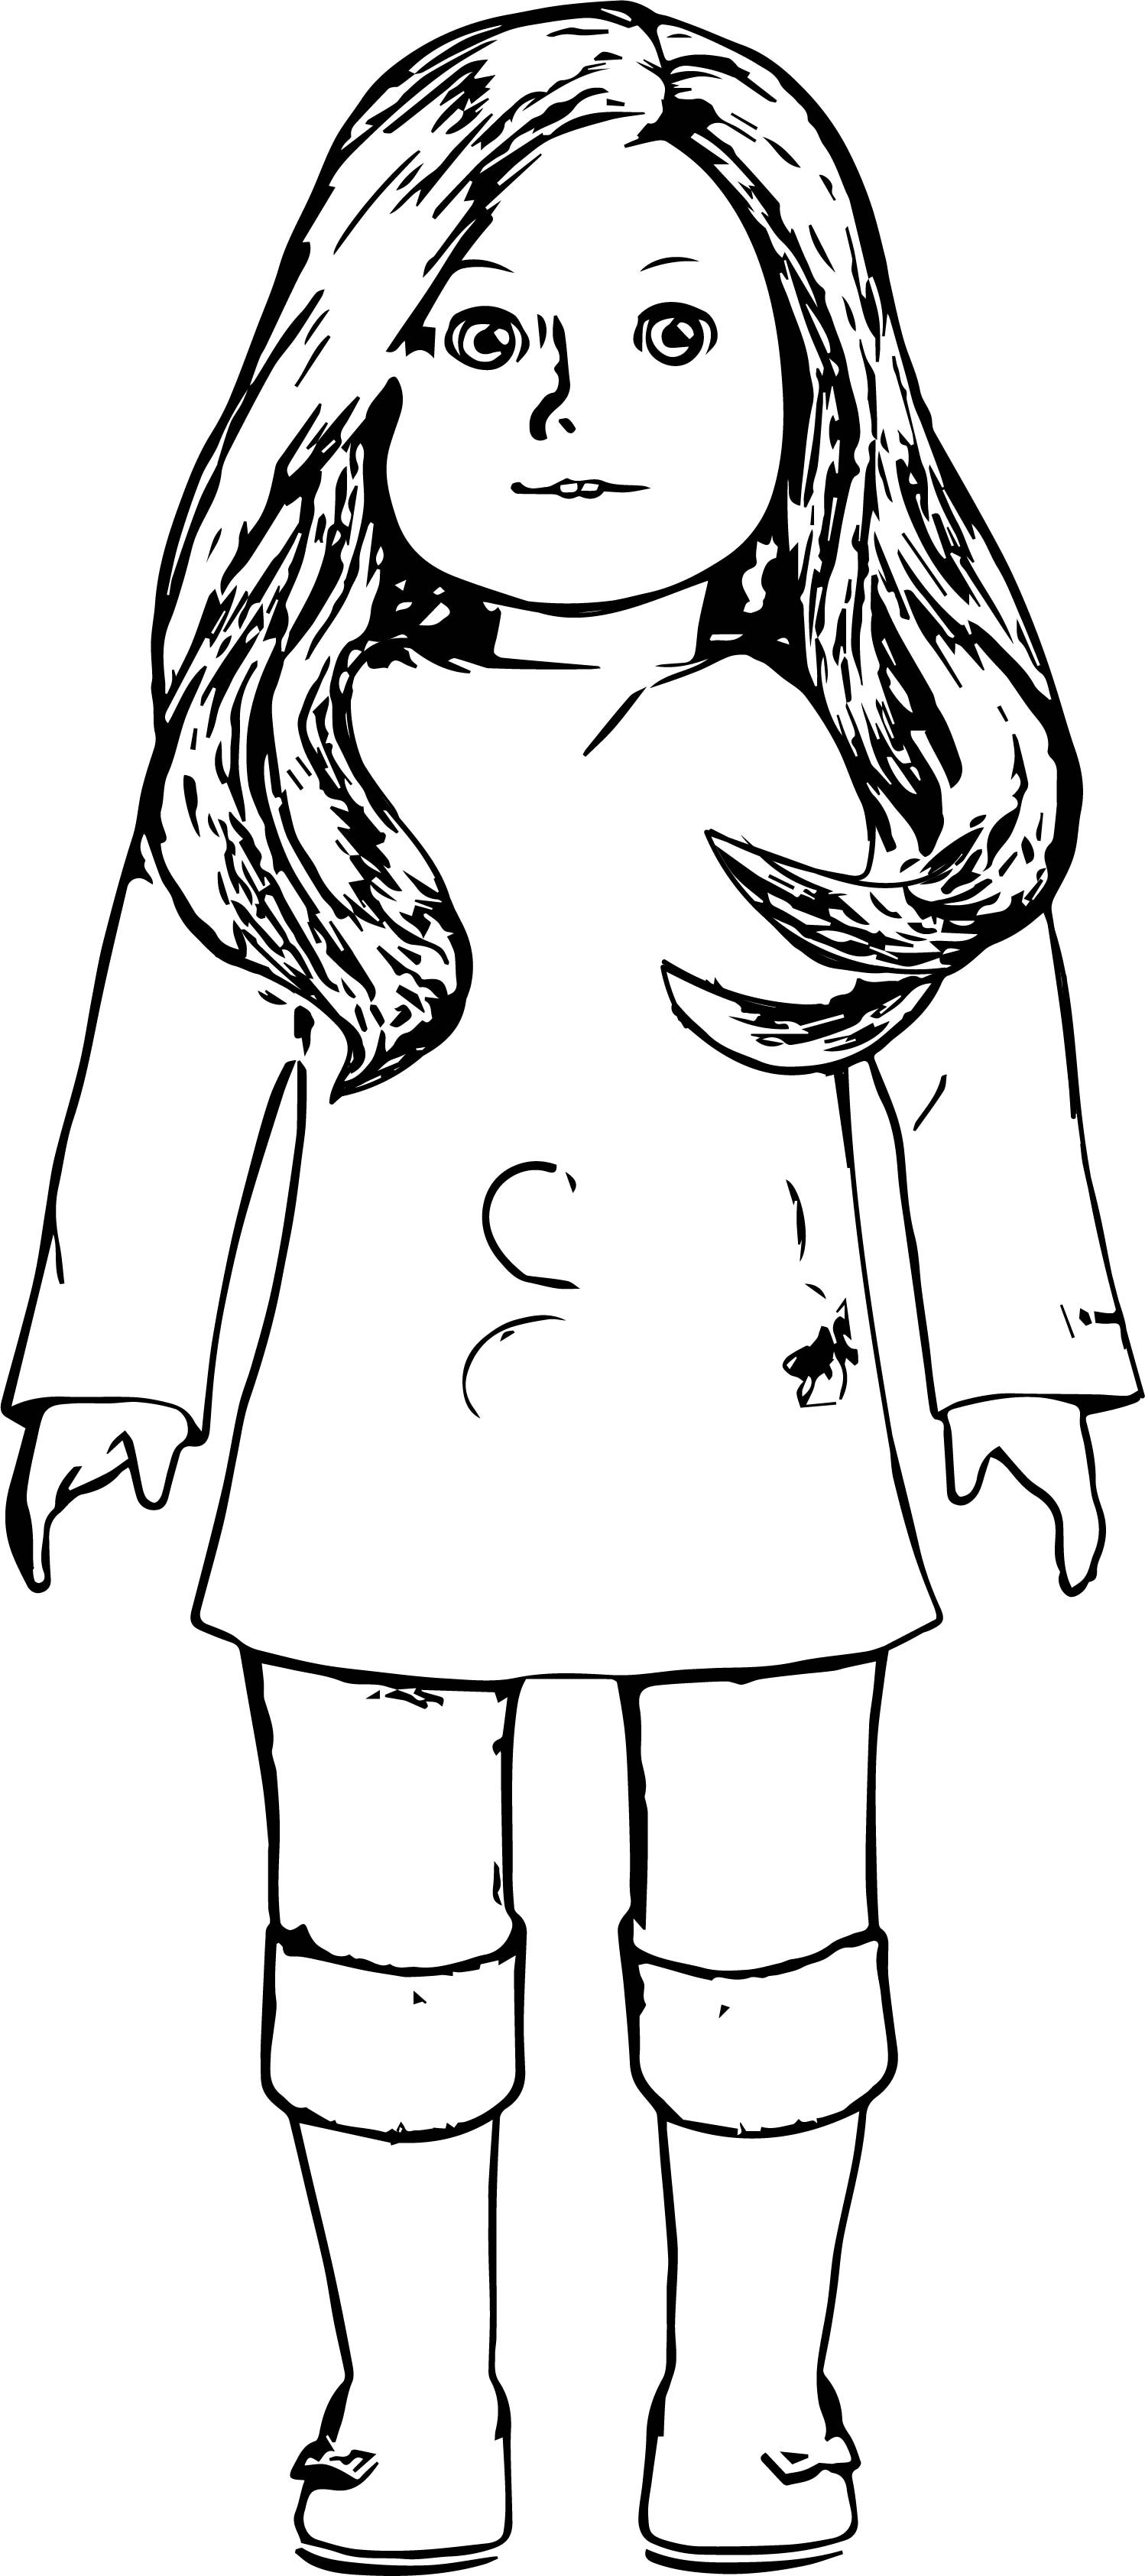 American Girl Doll Coloring Pages  My American Girl Doll Coloring Page